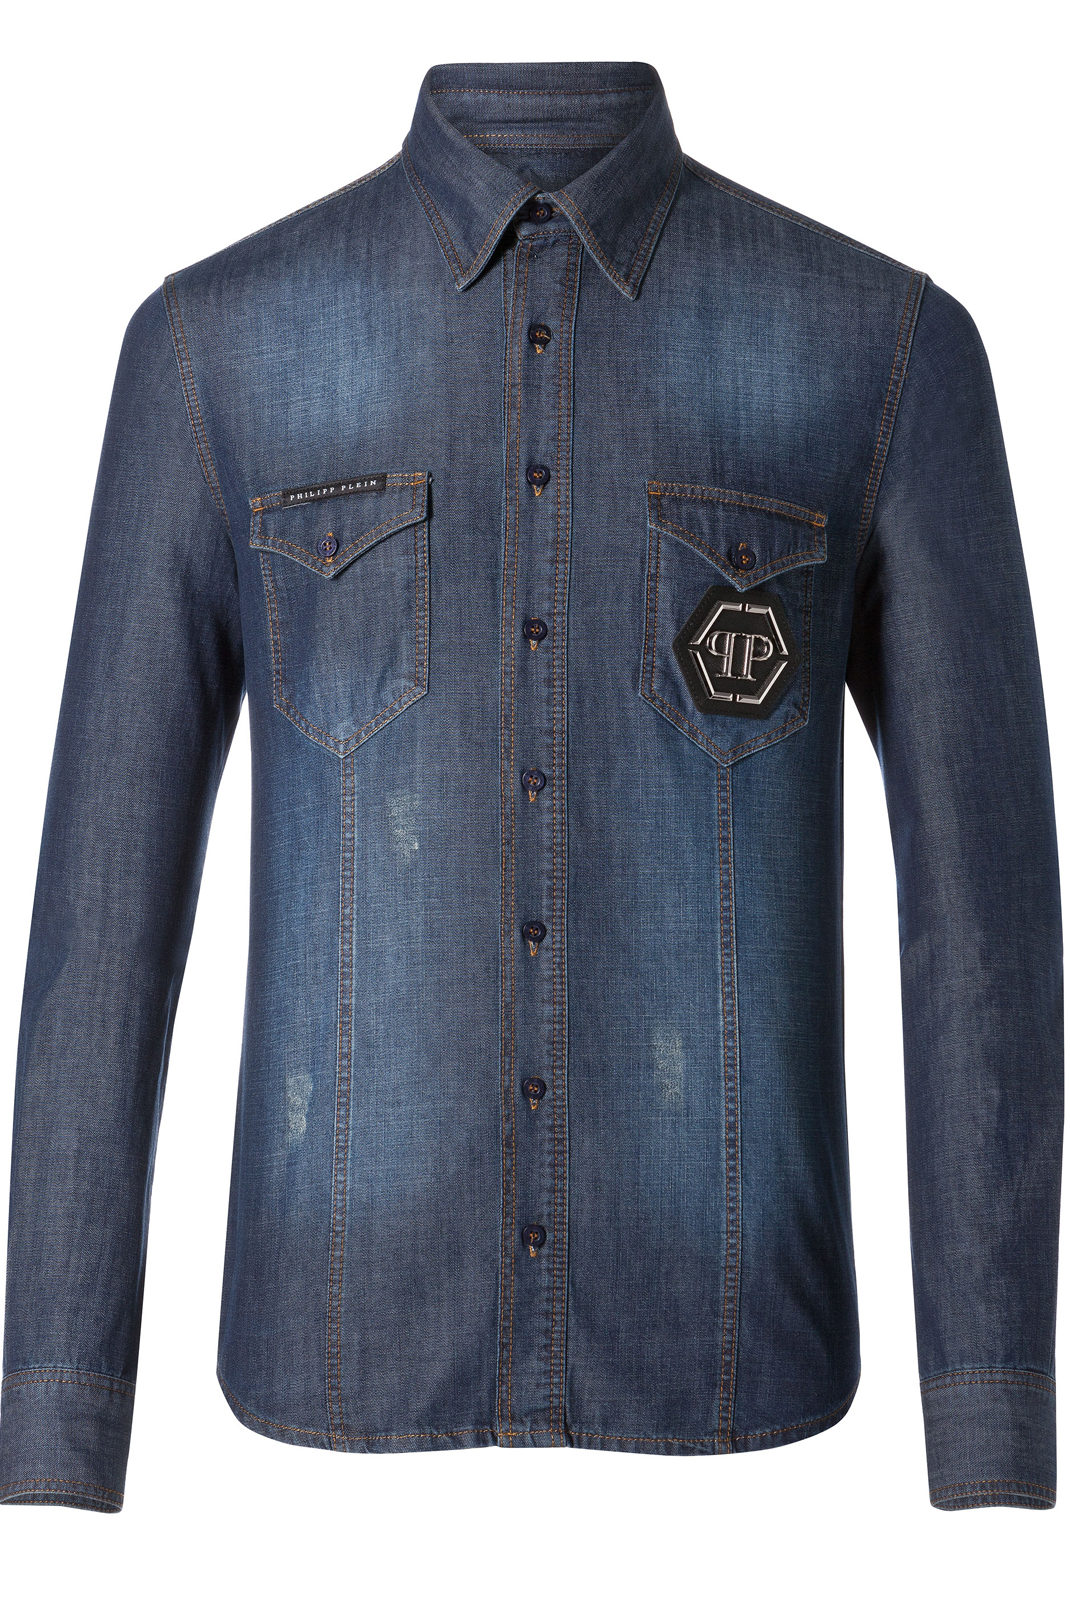 Chemises manches longues  Philipp plein F17C MDP0036 FULL 14SE JEANS